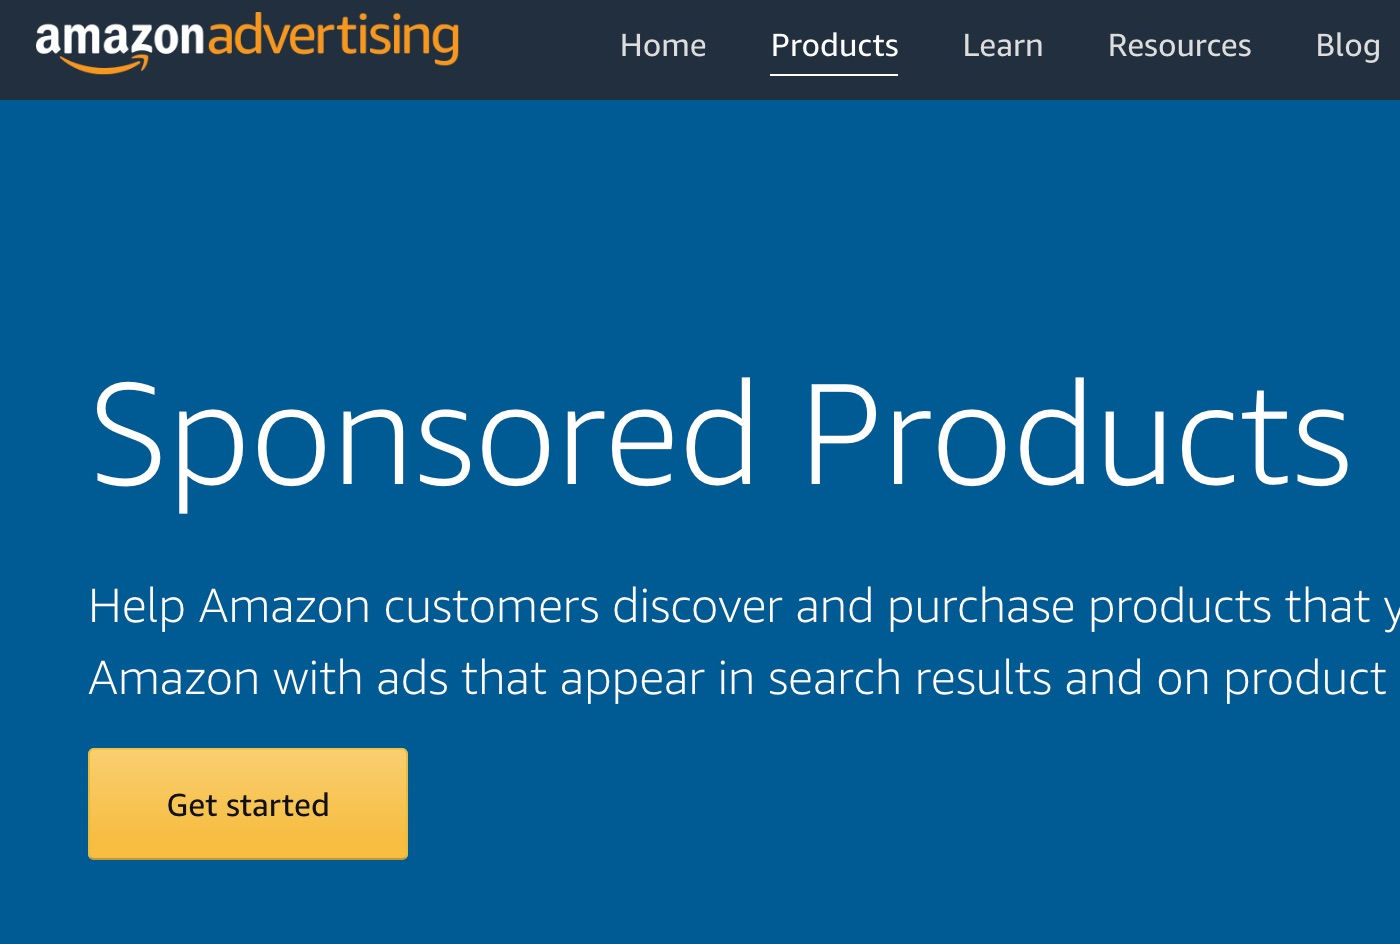 Amazon Advertising access